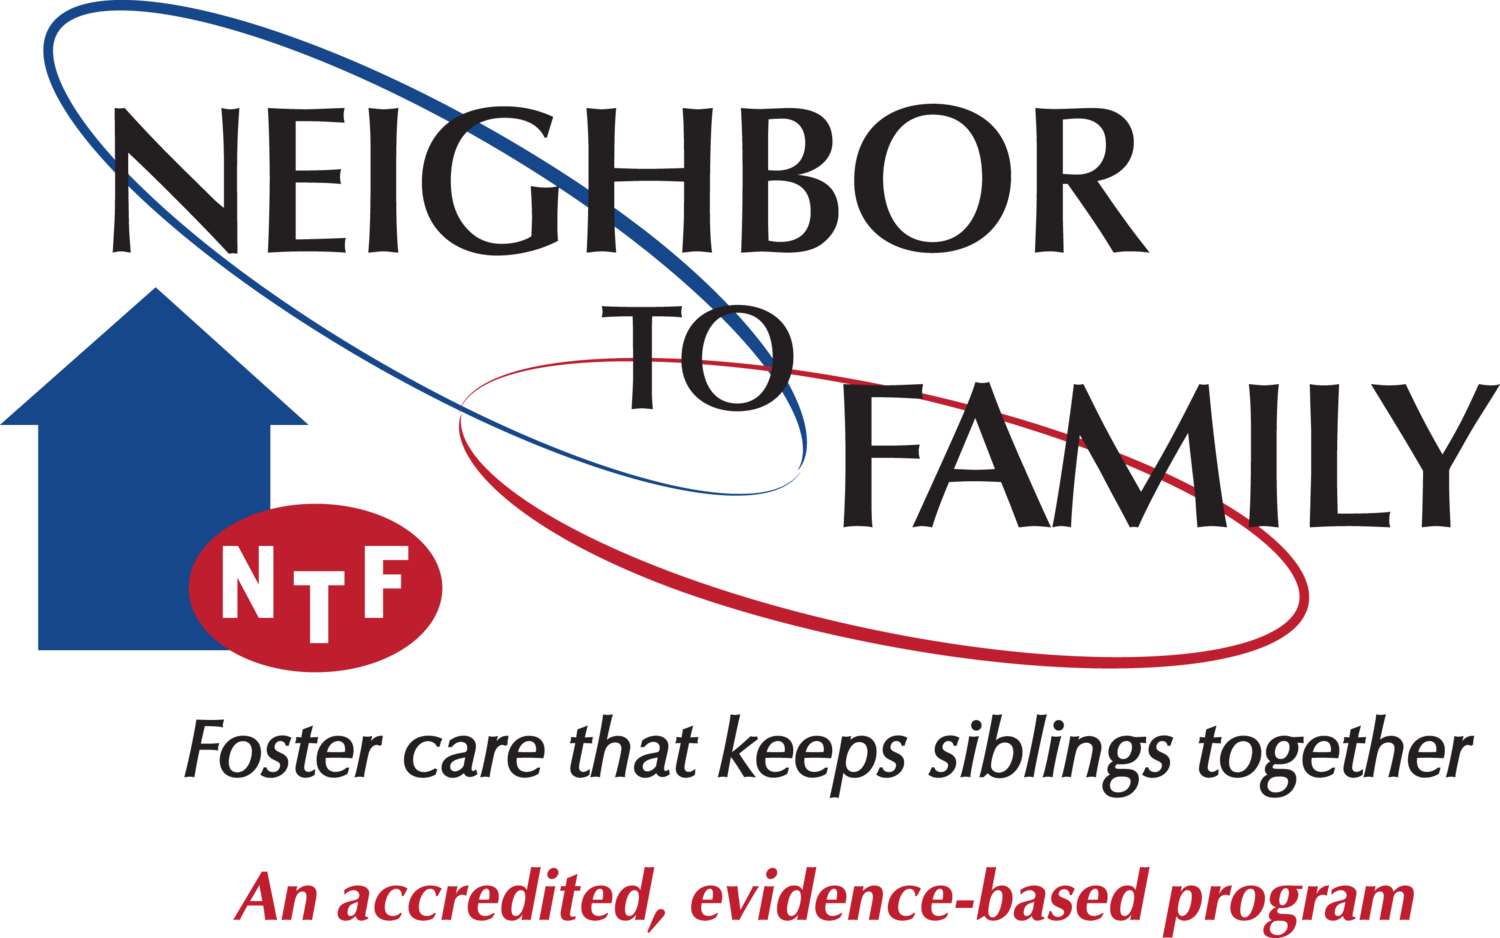 Neighbor To Family, Inc.